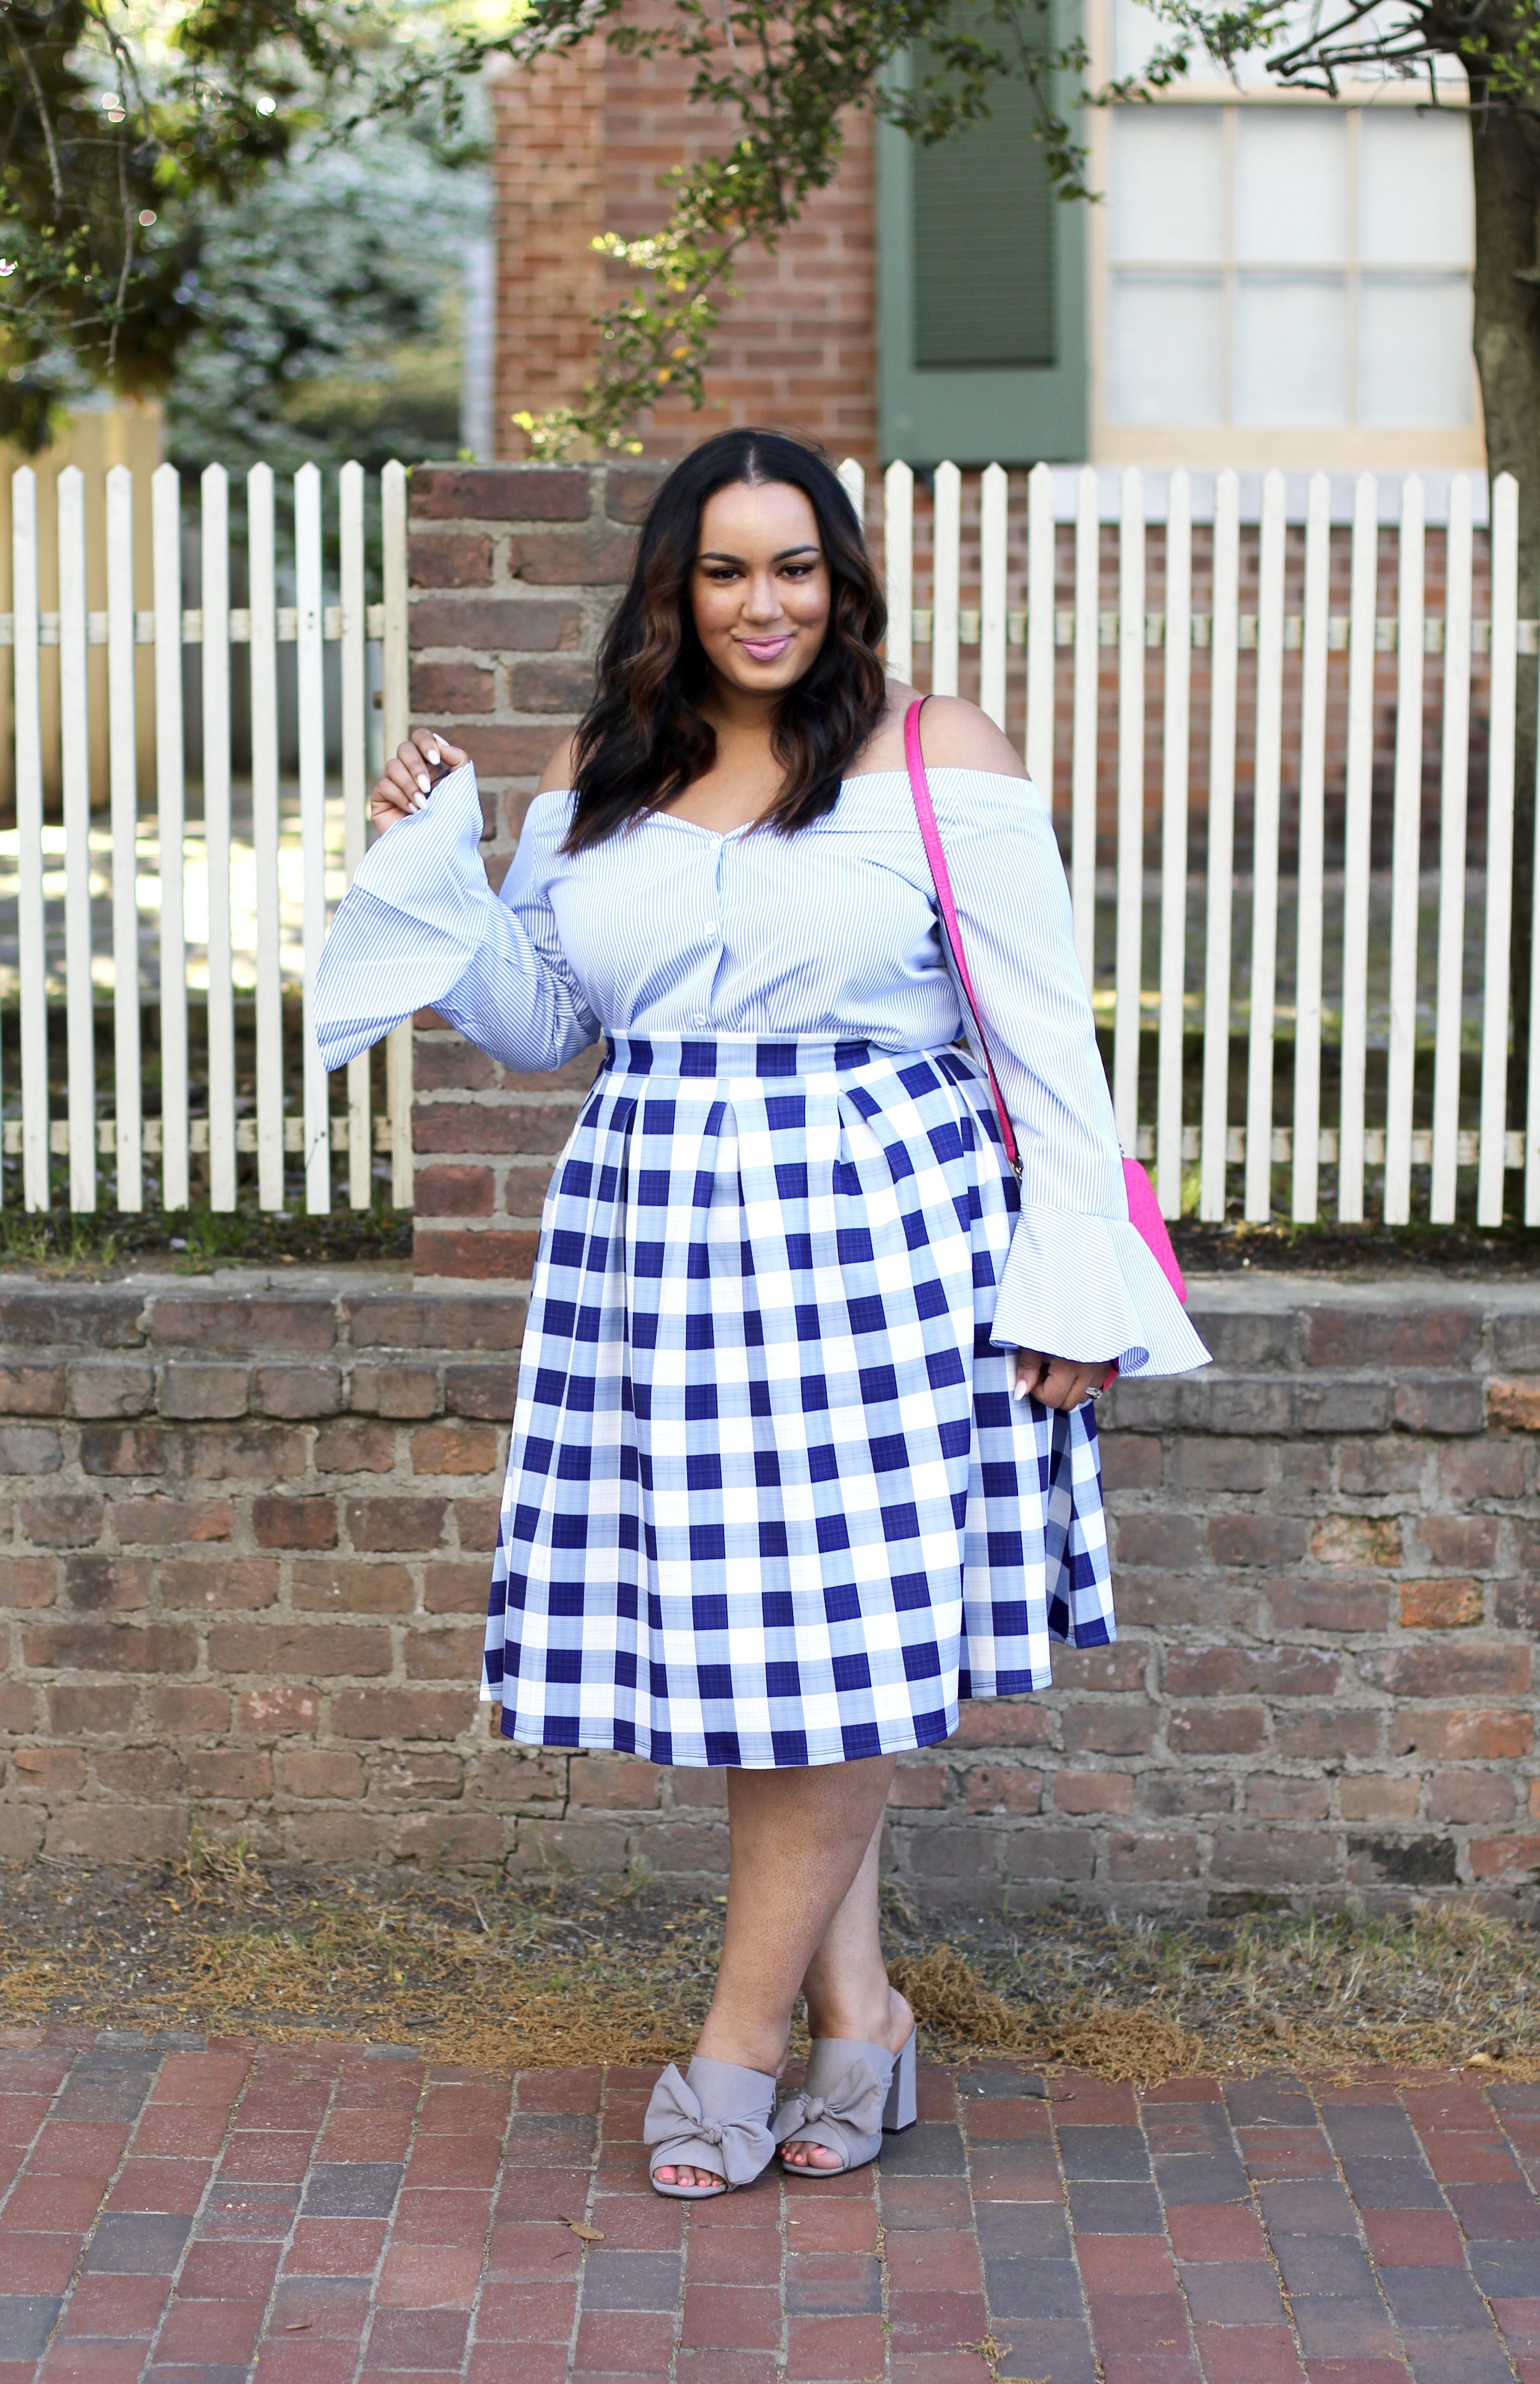 c11fd27e430 Off the Shoulder Shirt   Gingham Skirt